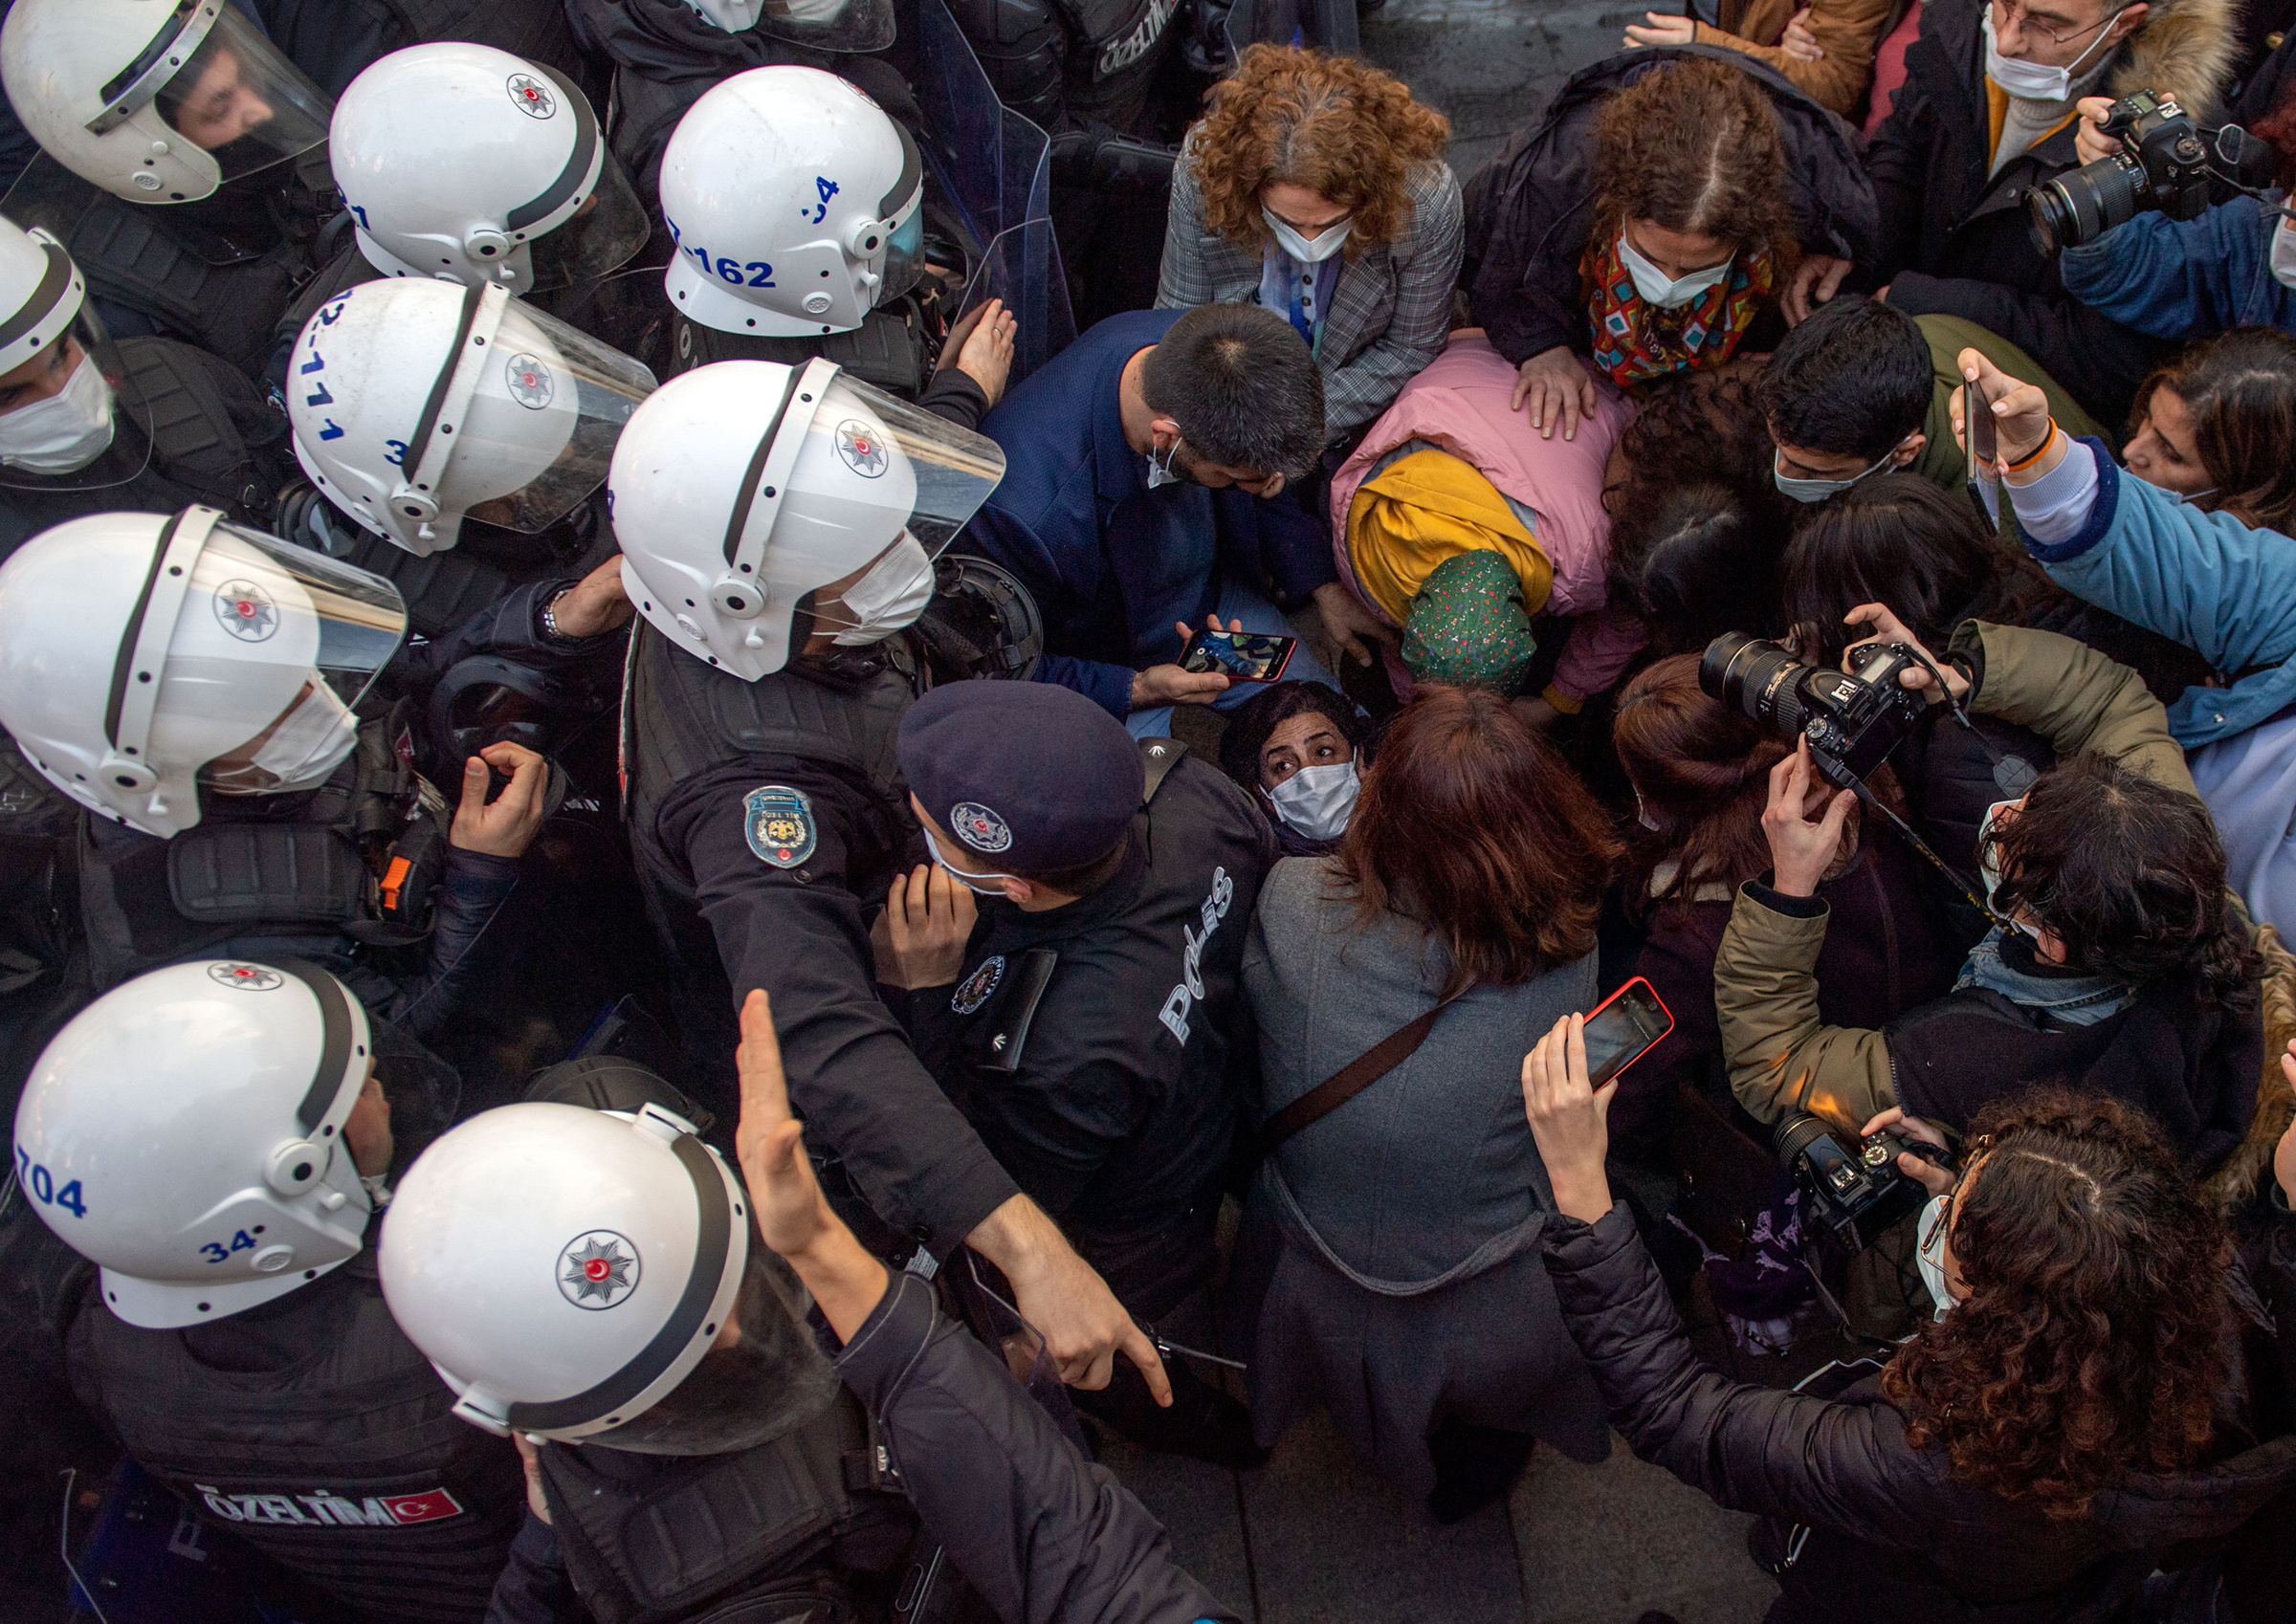 Turkish police officers detain people over protests in Istanbul against President Tayyip Erdogan's appointment of a new rector at Bogazici University on Feb. 4, 2021.